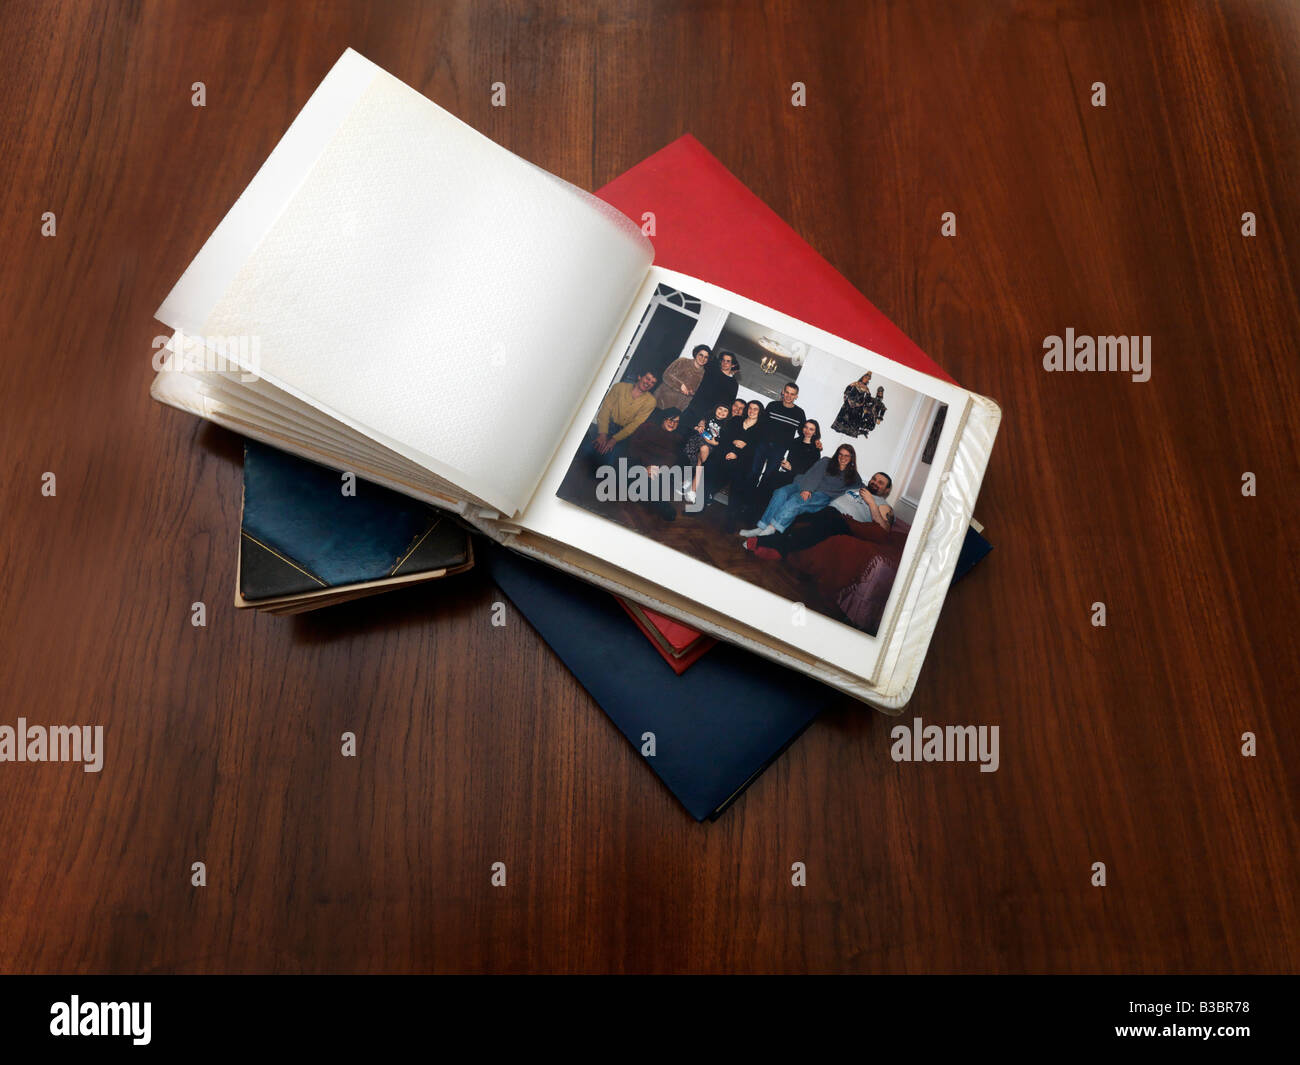 Pile of Photo Albums - Stock Image